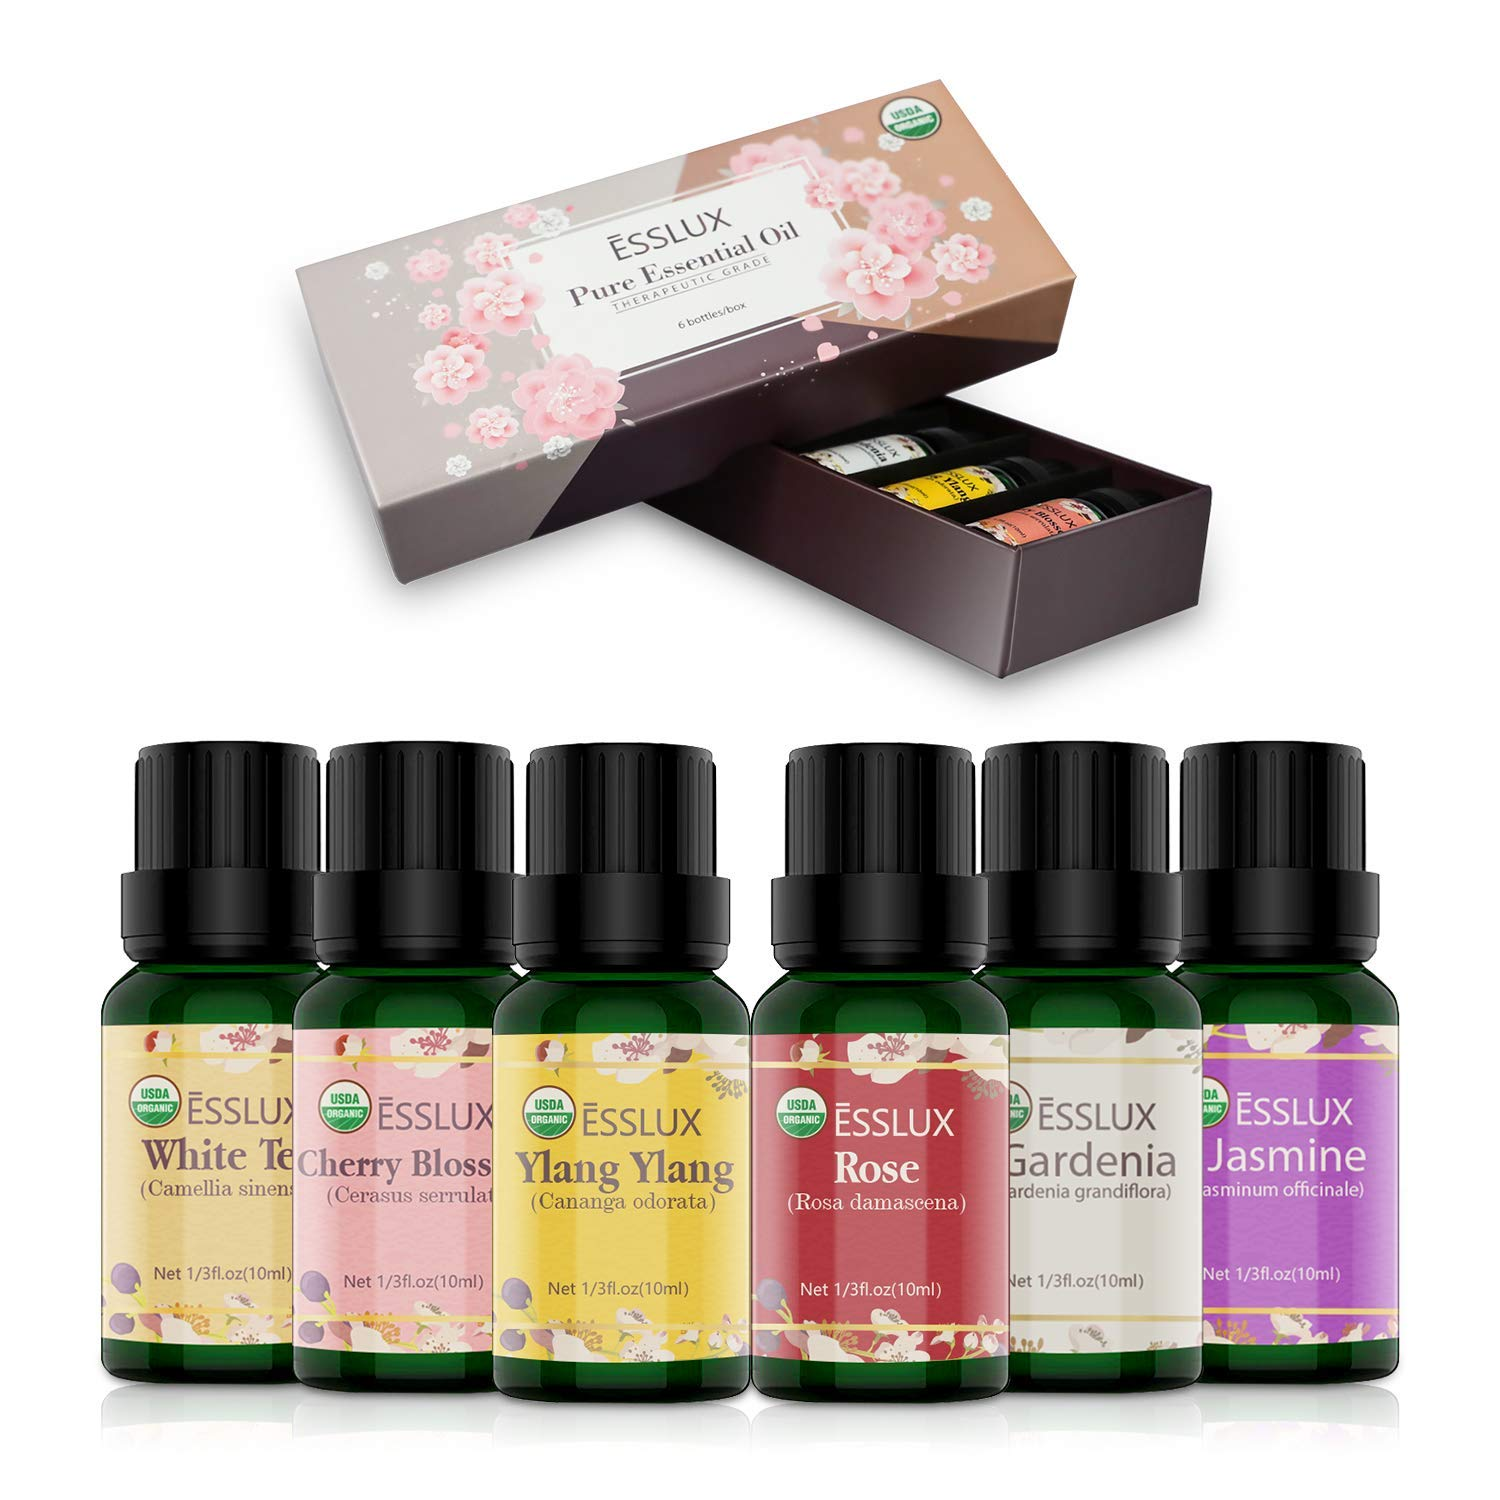 ESSLUX Floral Essential Oils Set, 100% Pure Aromatherapy Oil Gift Set for Diffuser & Massage, Rose, Ylang Ylang, Jasmine, Gardenia, Cherry Blossom, White Tea Oil, 6x10ml (Multicolor) by ESSLUX